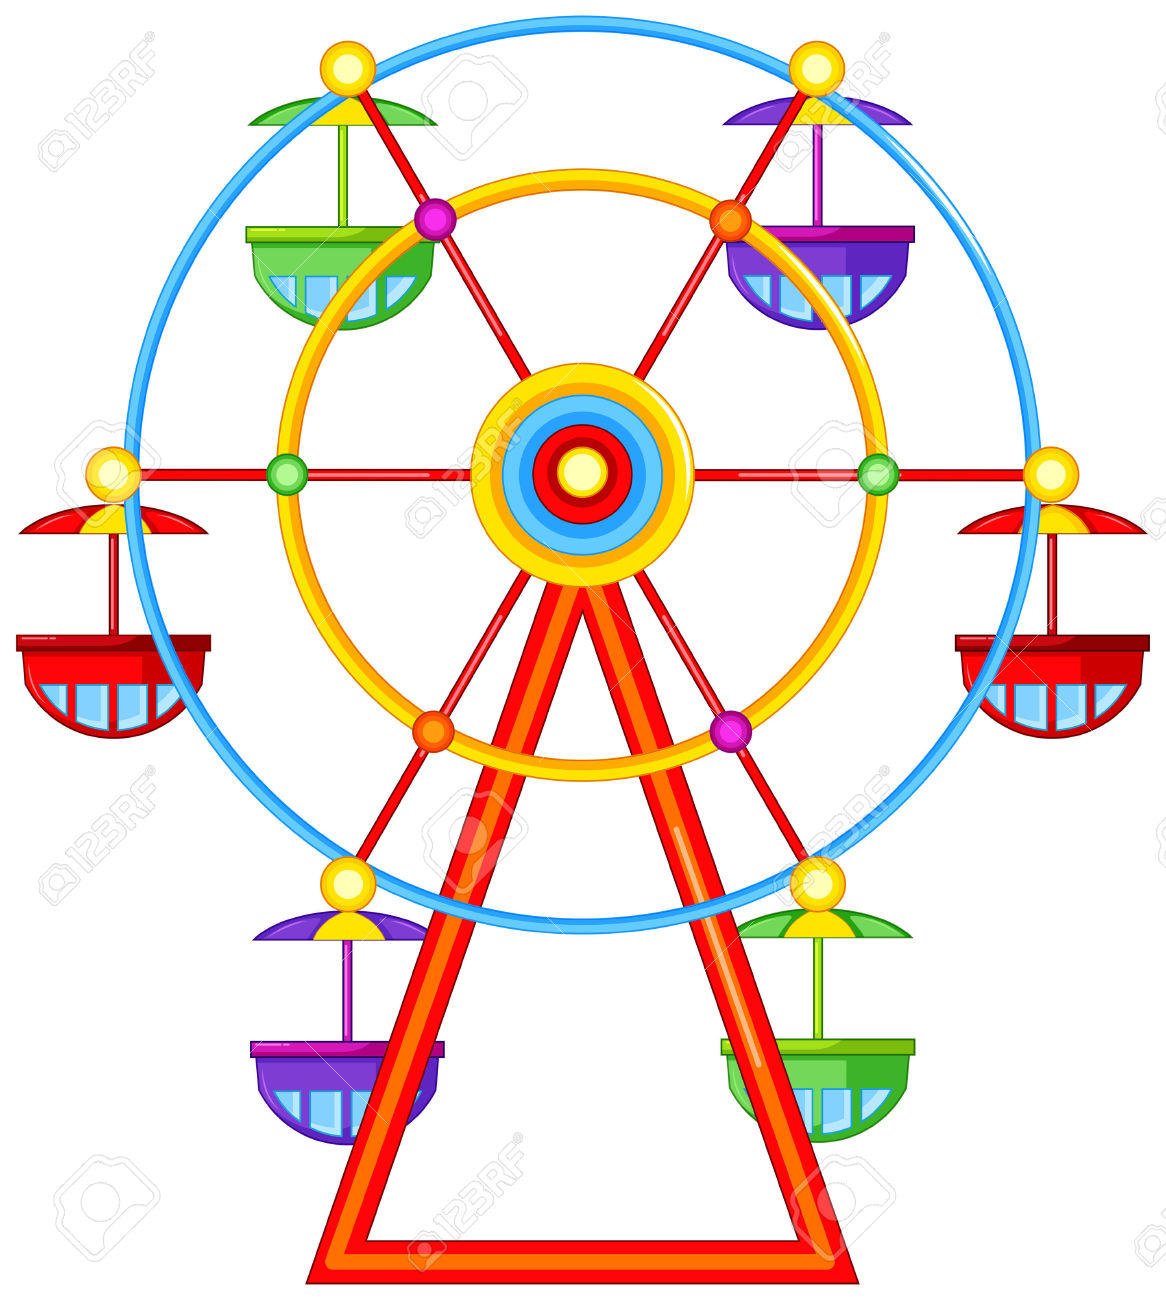 ferris wheel silhouette at getdrawings com free for personal use rh getdrawings com ferris wheel clipart free ferris wheel clip art free